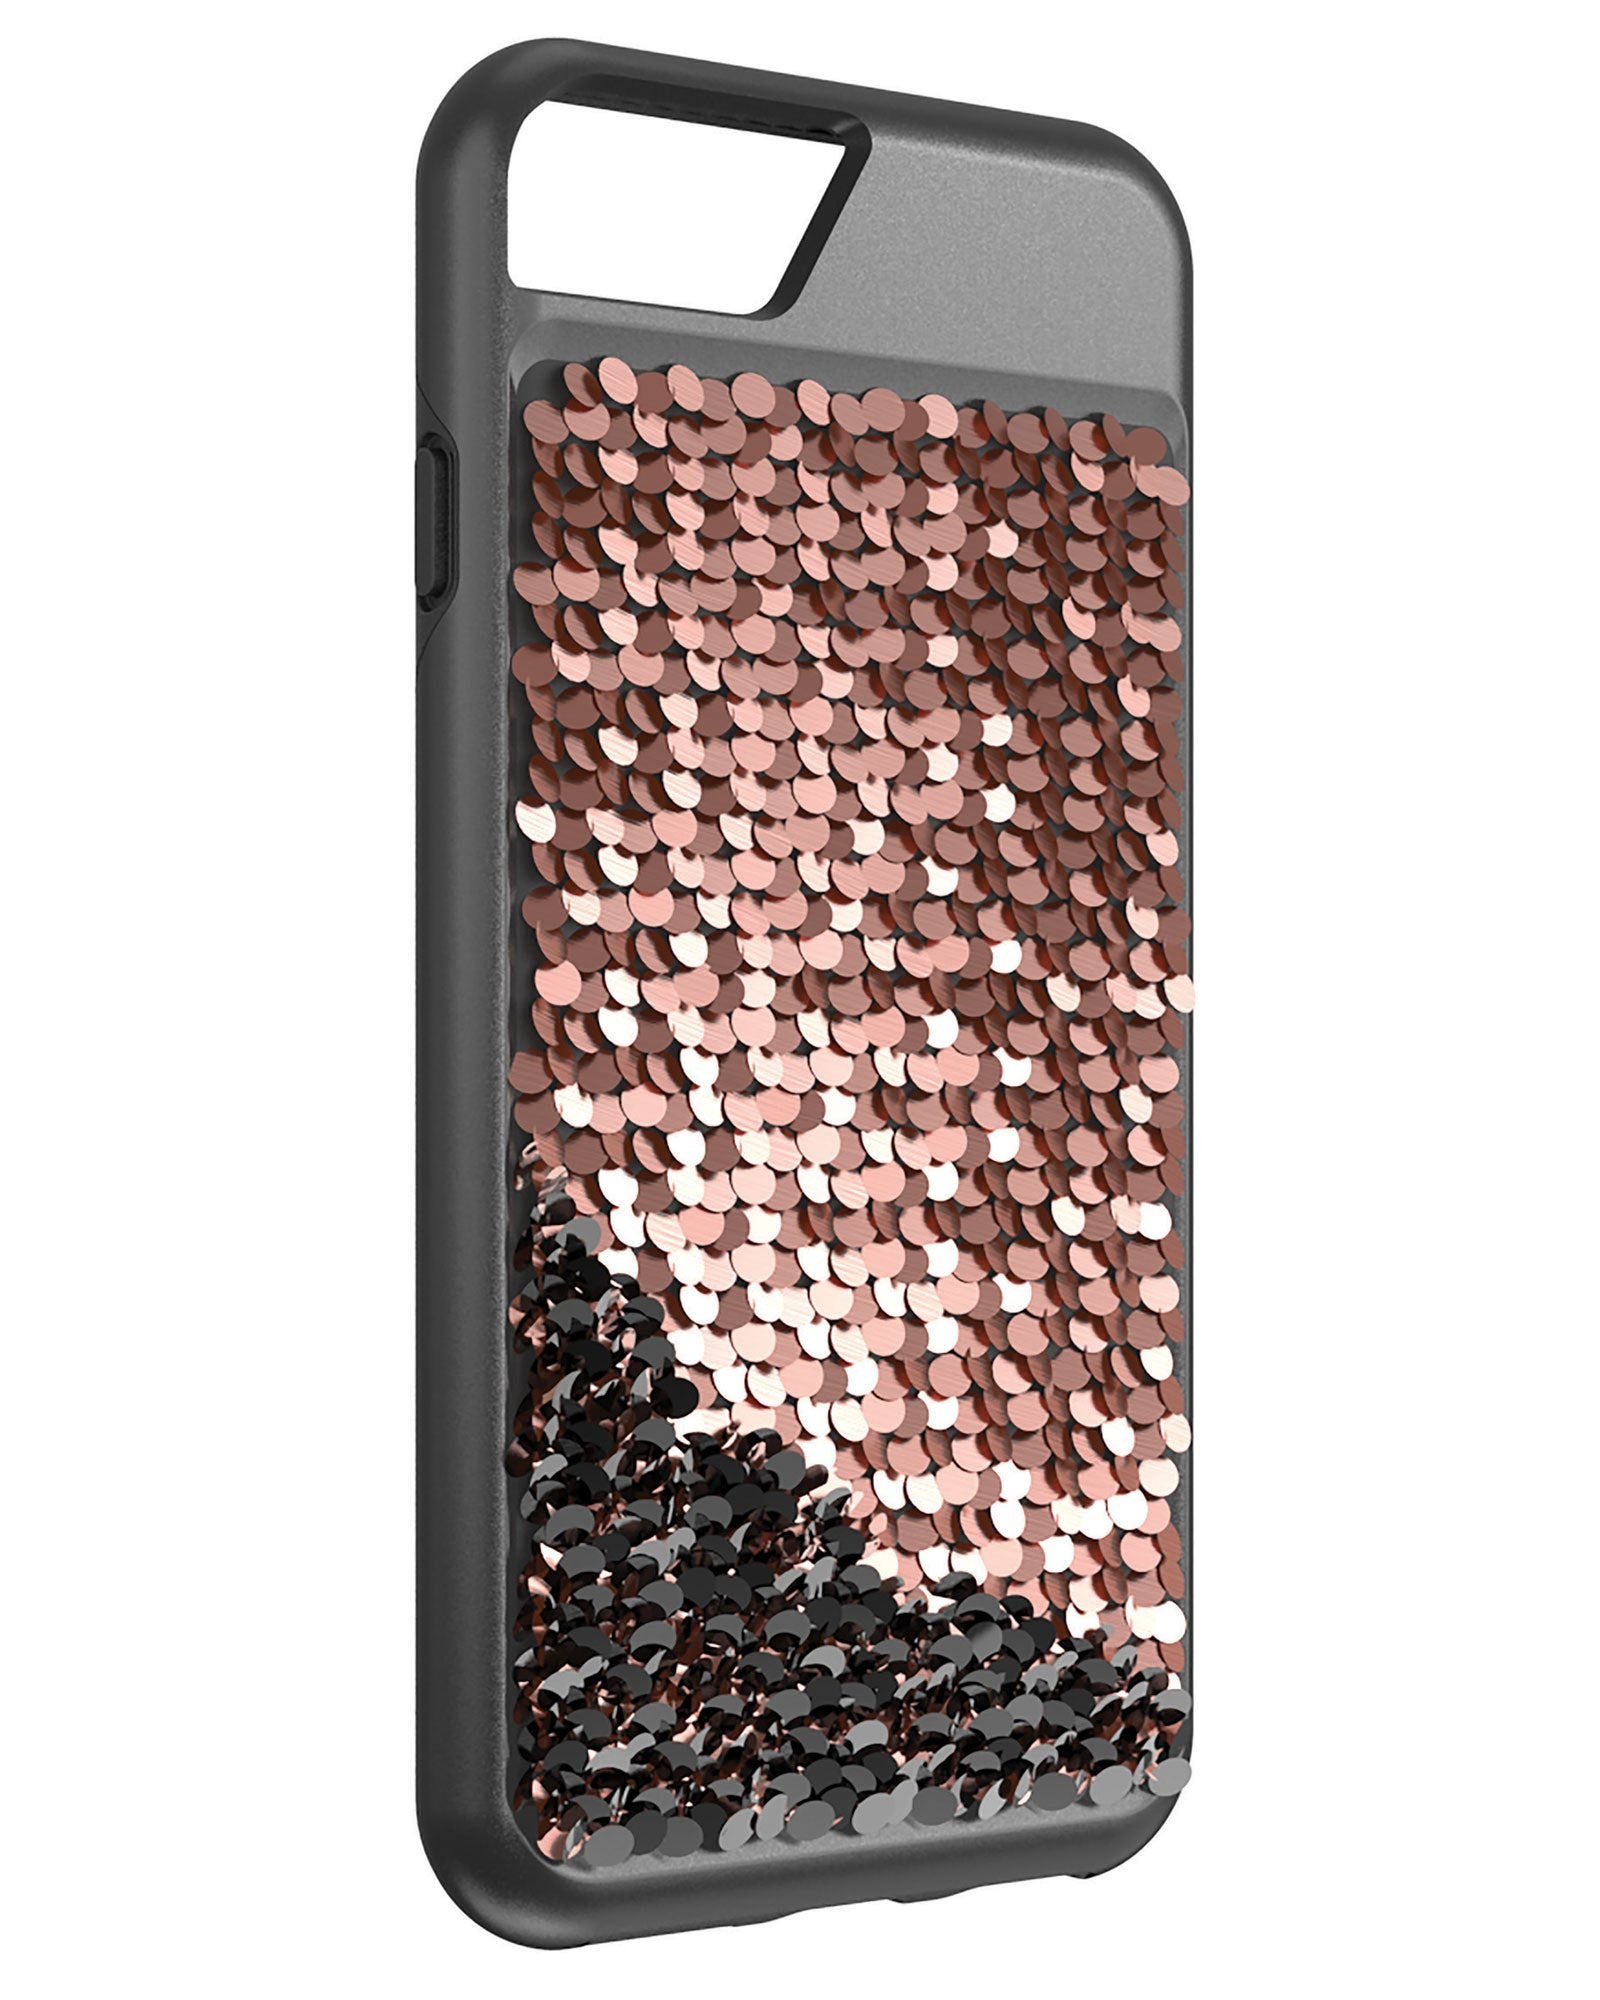 size 40 24013 c458d Shimmer Case for iPhone 6 Plus, iPhone 6s Plus, iPhone 7 Plus, iPhone 8  Plus - Black/Rose Gold -